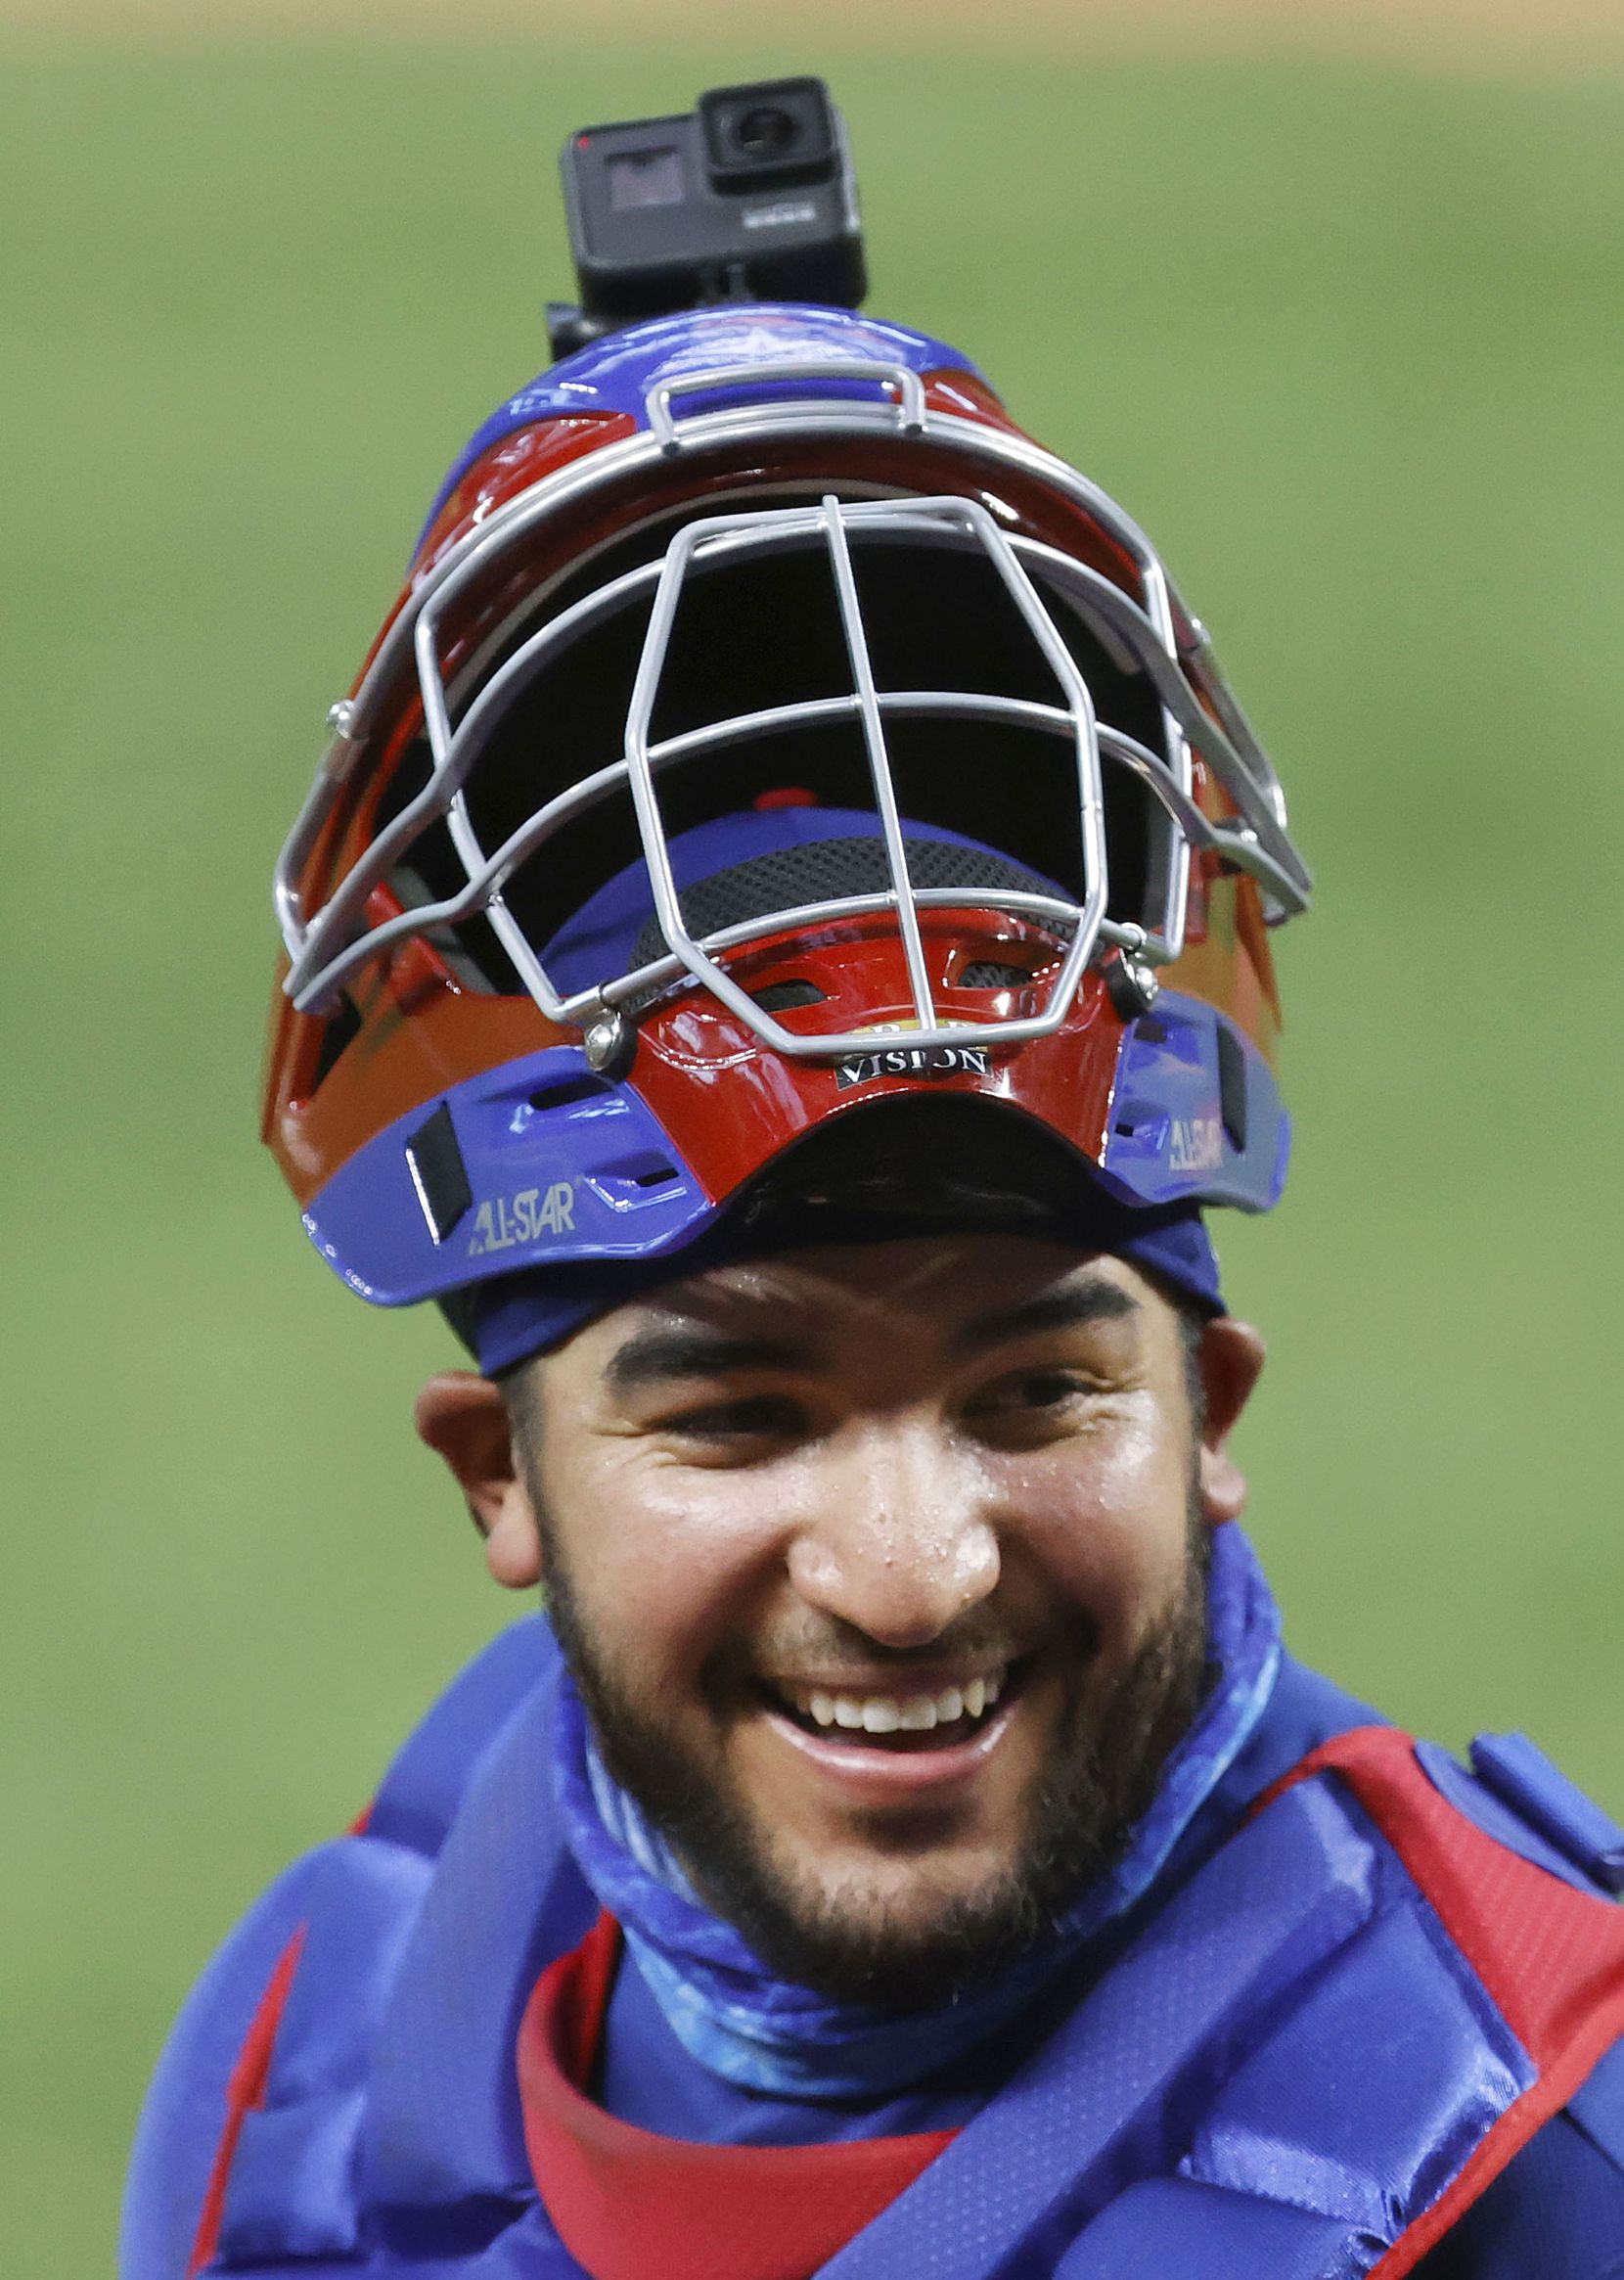 Texas Rangers catcher Jose Trevino wore a GoPro camera on his helmet to record pitching from behind the plate during a simulated Summer Camp game inside Globe Life Field in Arlington, Texas, Thursday, July 9, 2020. (Tom Fox/The Dallas Morning News)